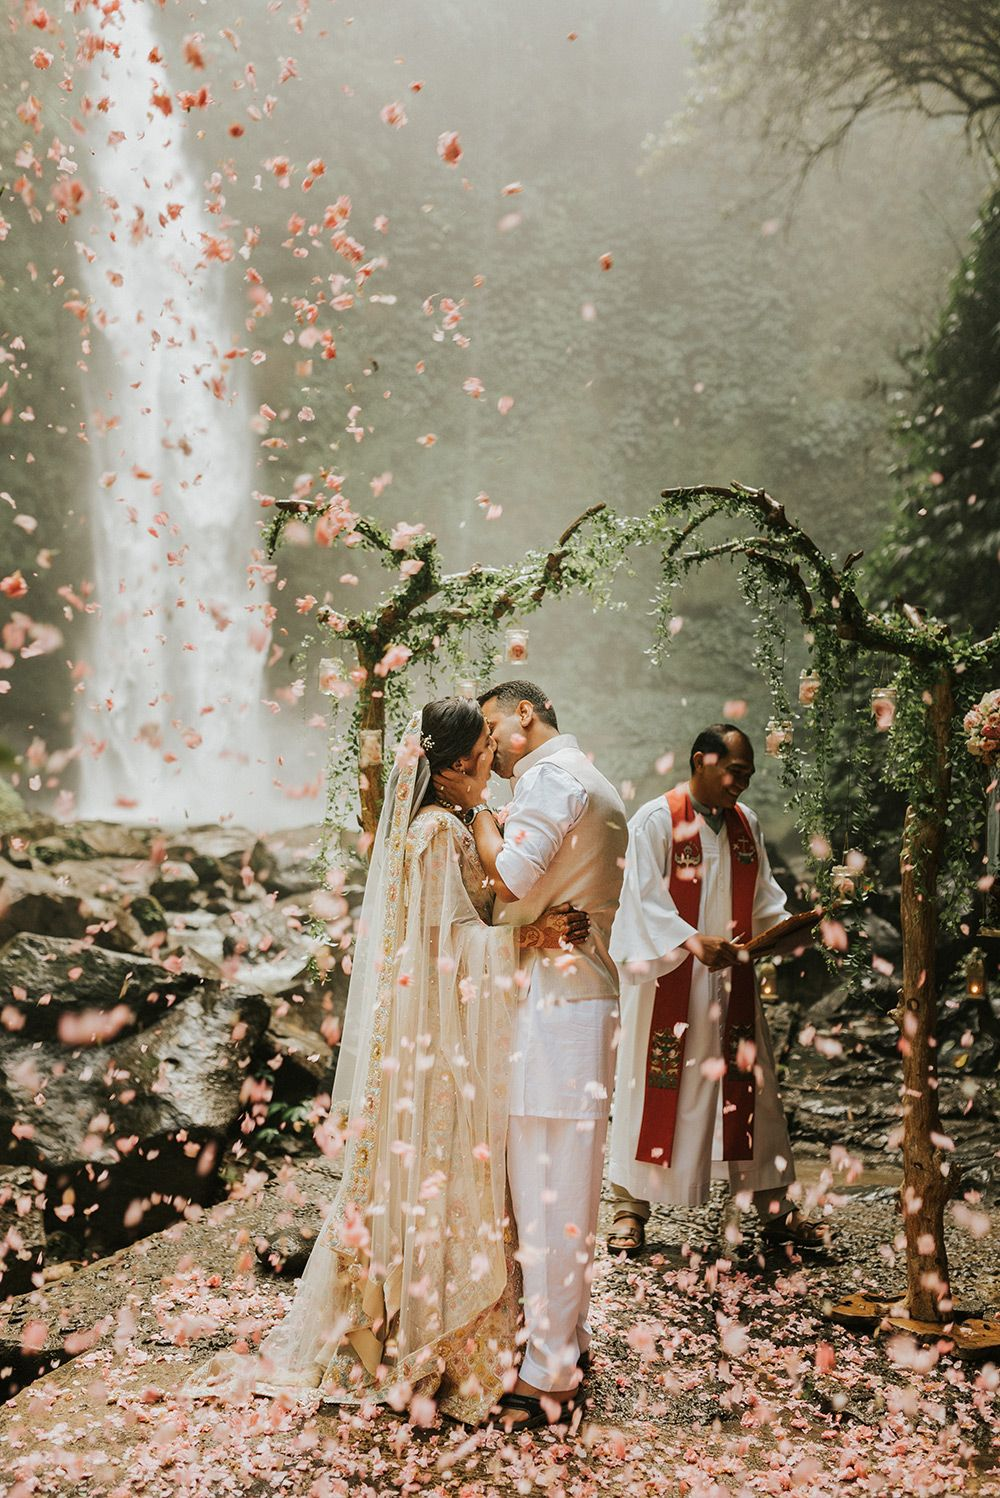 6 amazing Bali elopements and tips on planning your own | Wedding